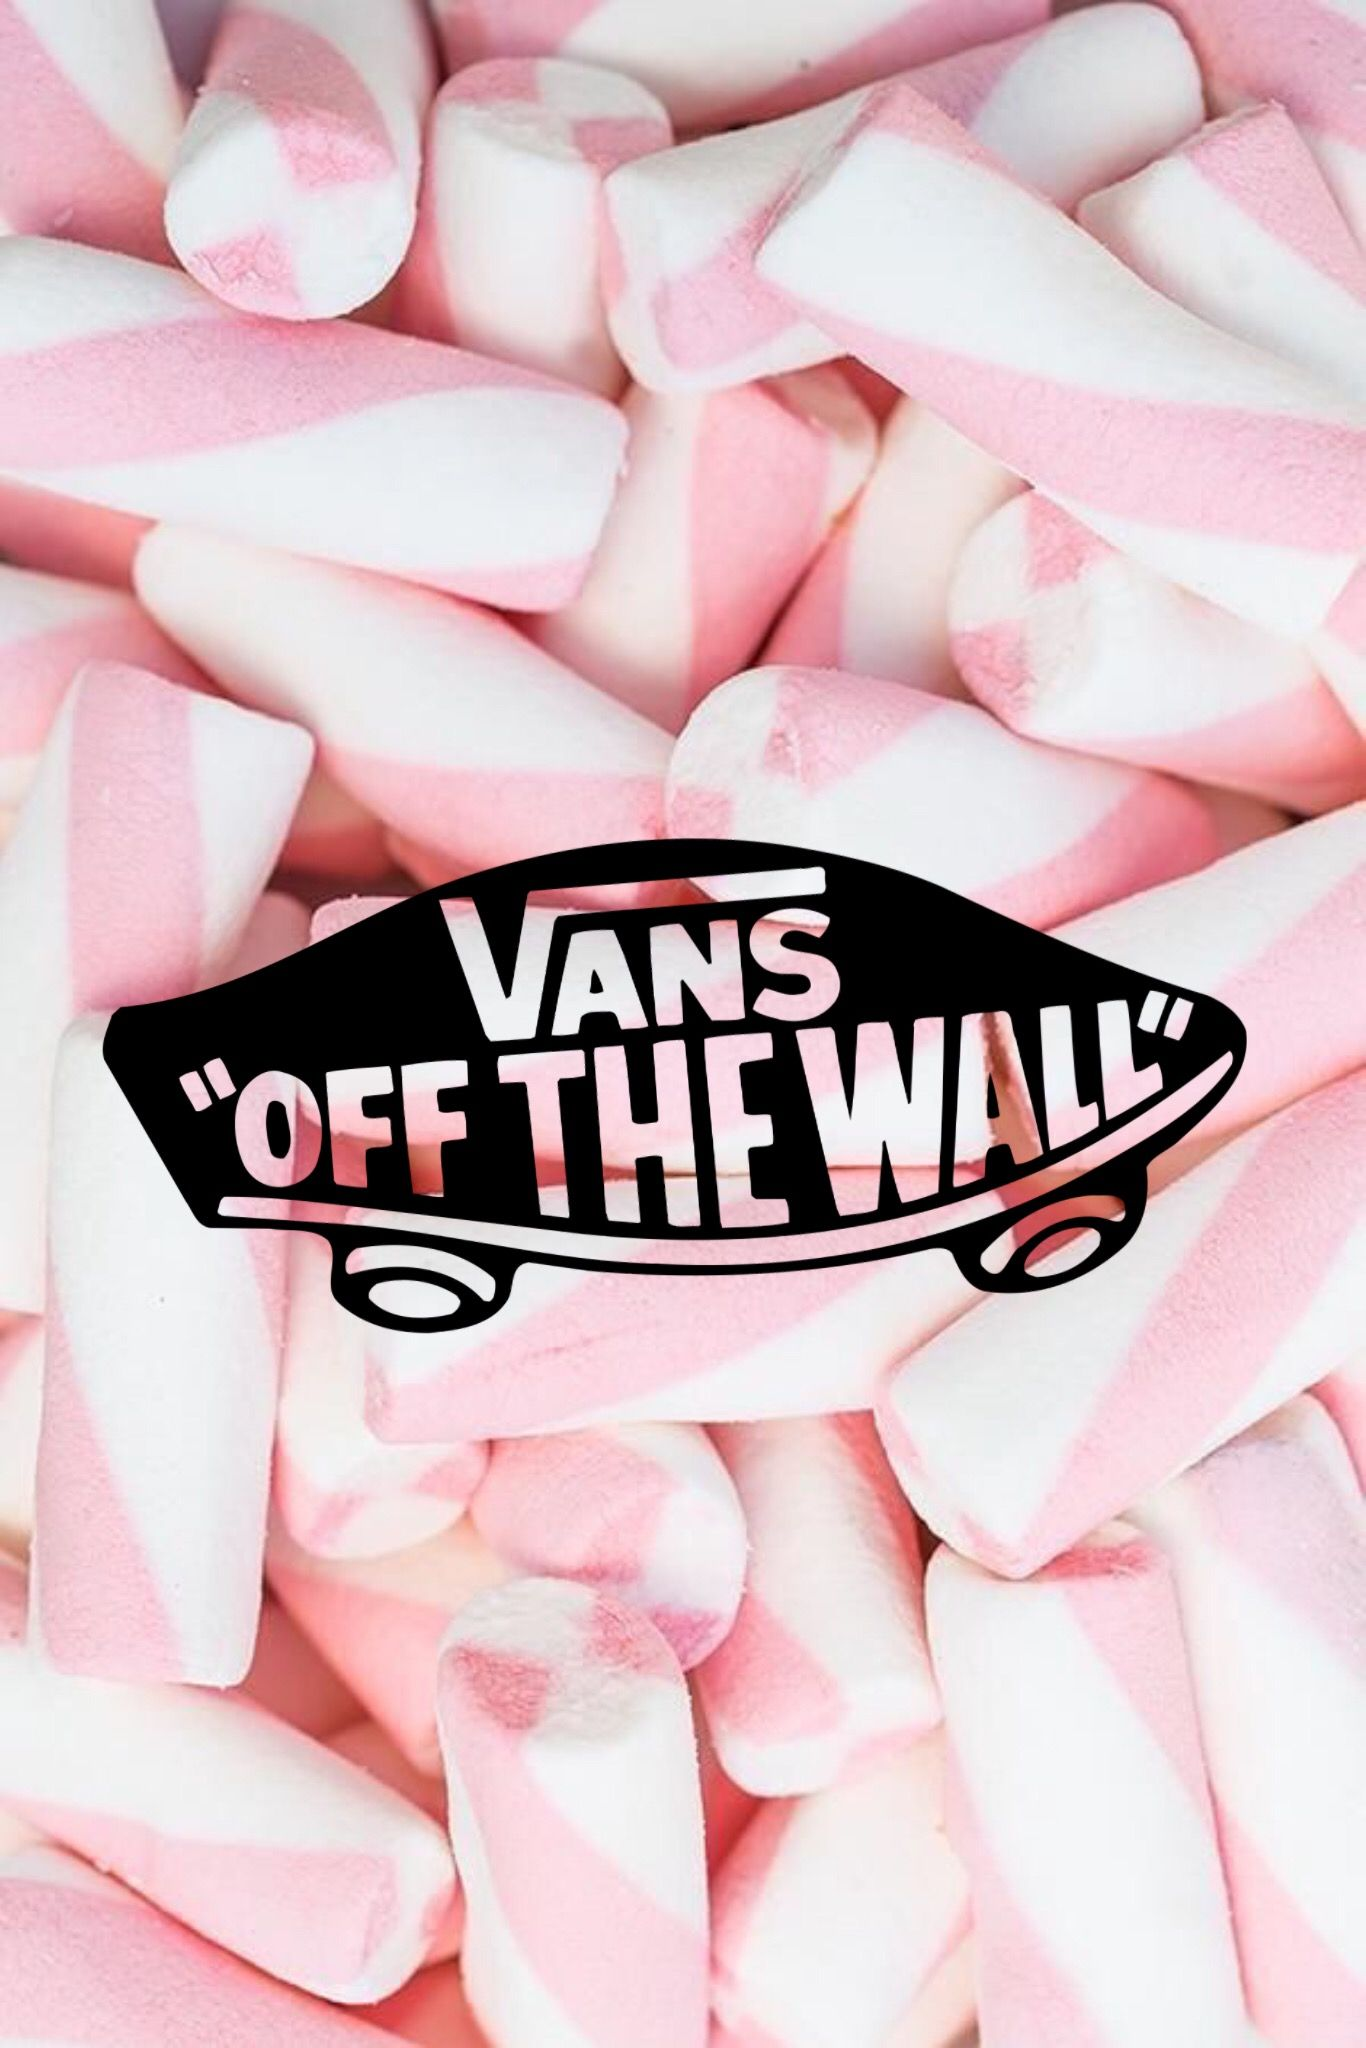 Pin by Sarina Vakil on clothes Iphone wallpaper vans